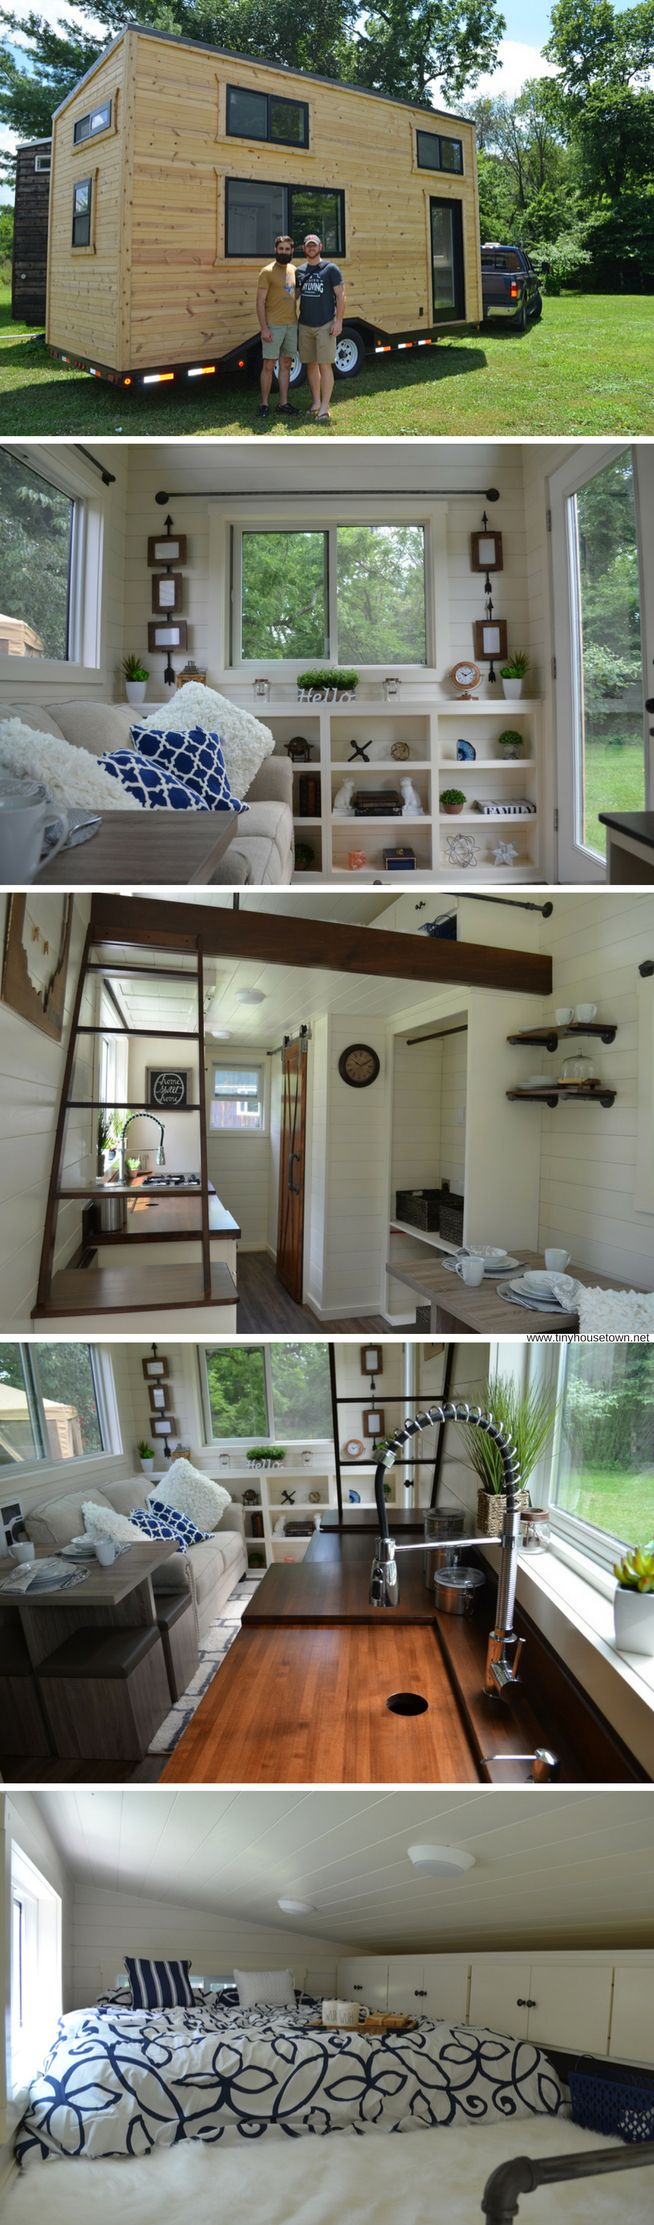 The Mohican: a 230 sq ft tiny house by Modern Tiny Living